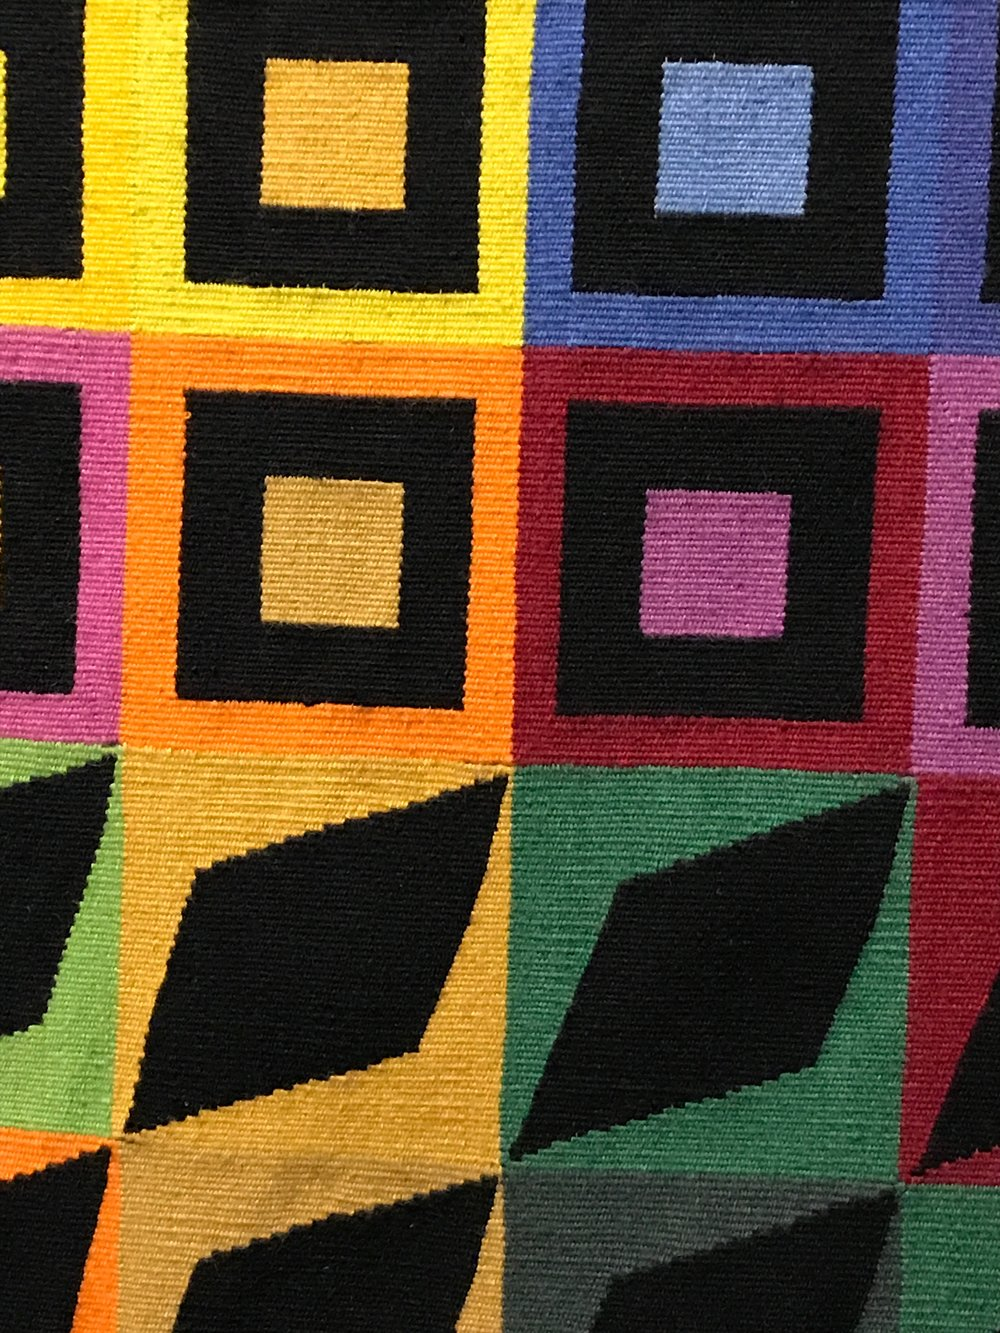 This is a Vasarely design for a tapestry